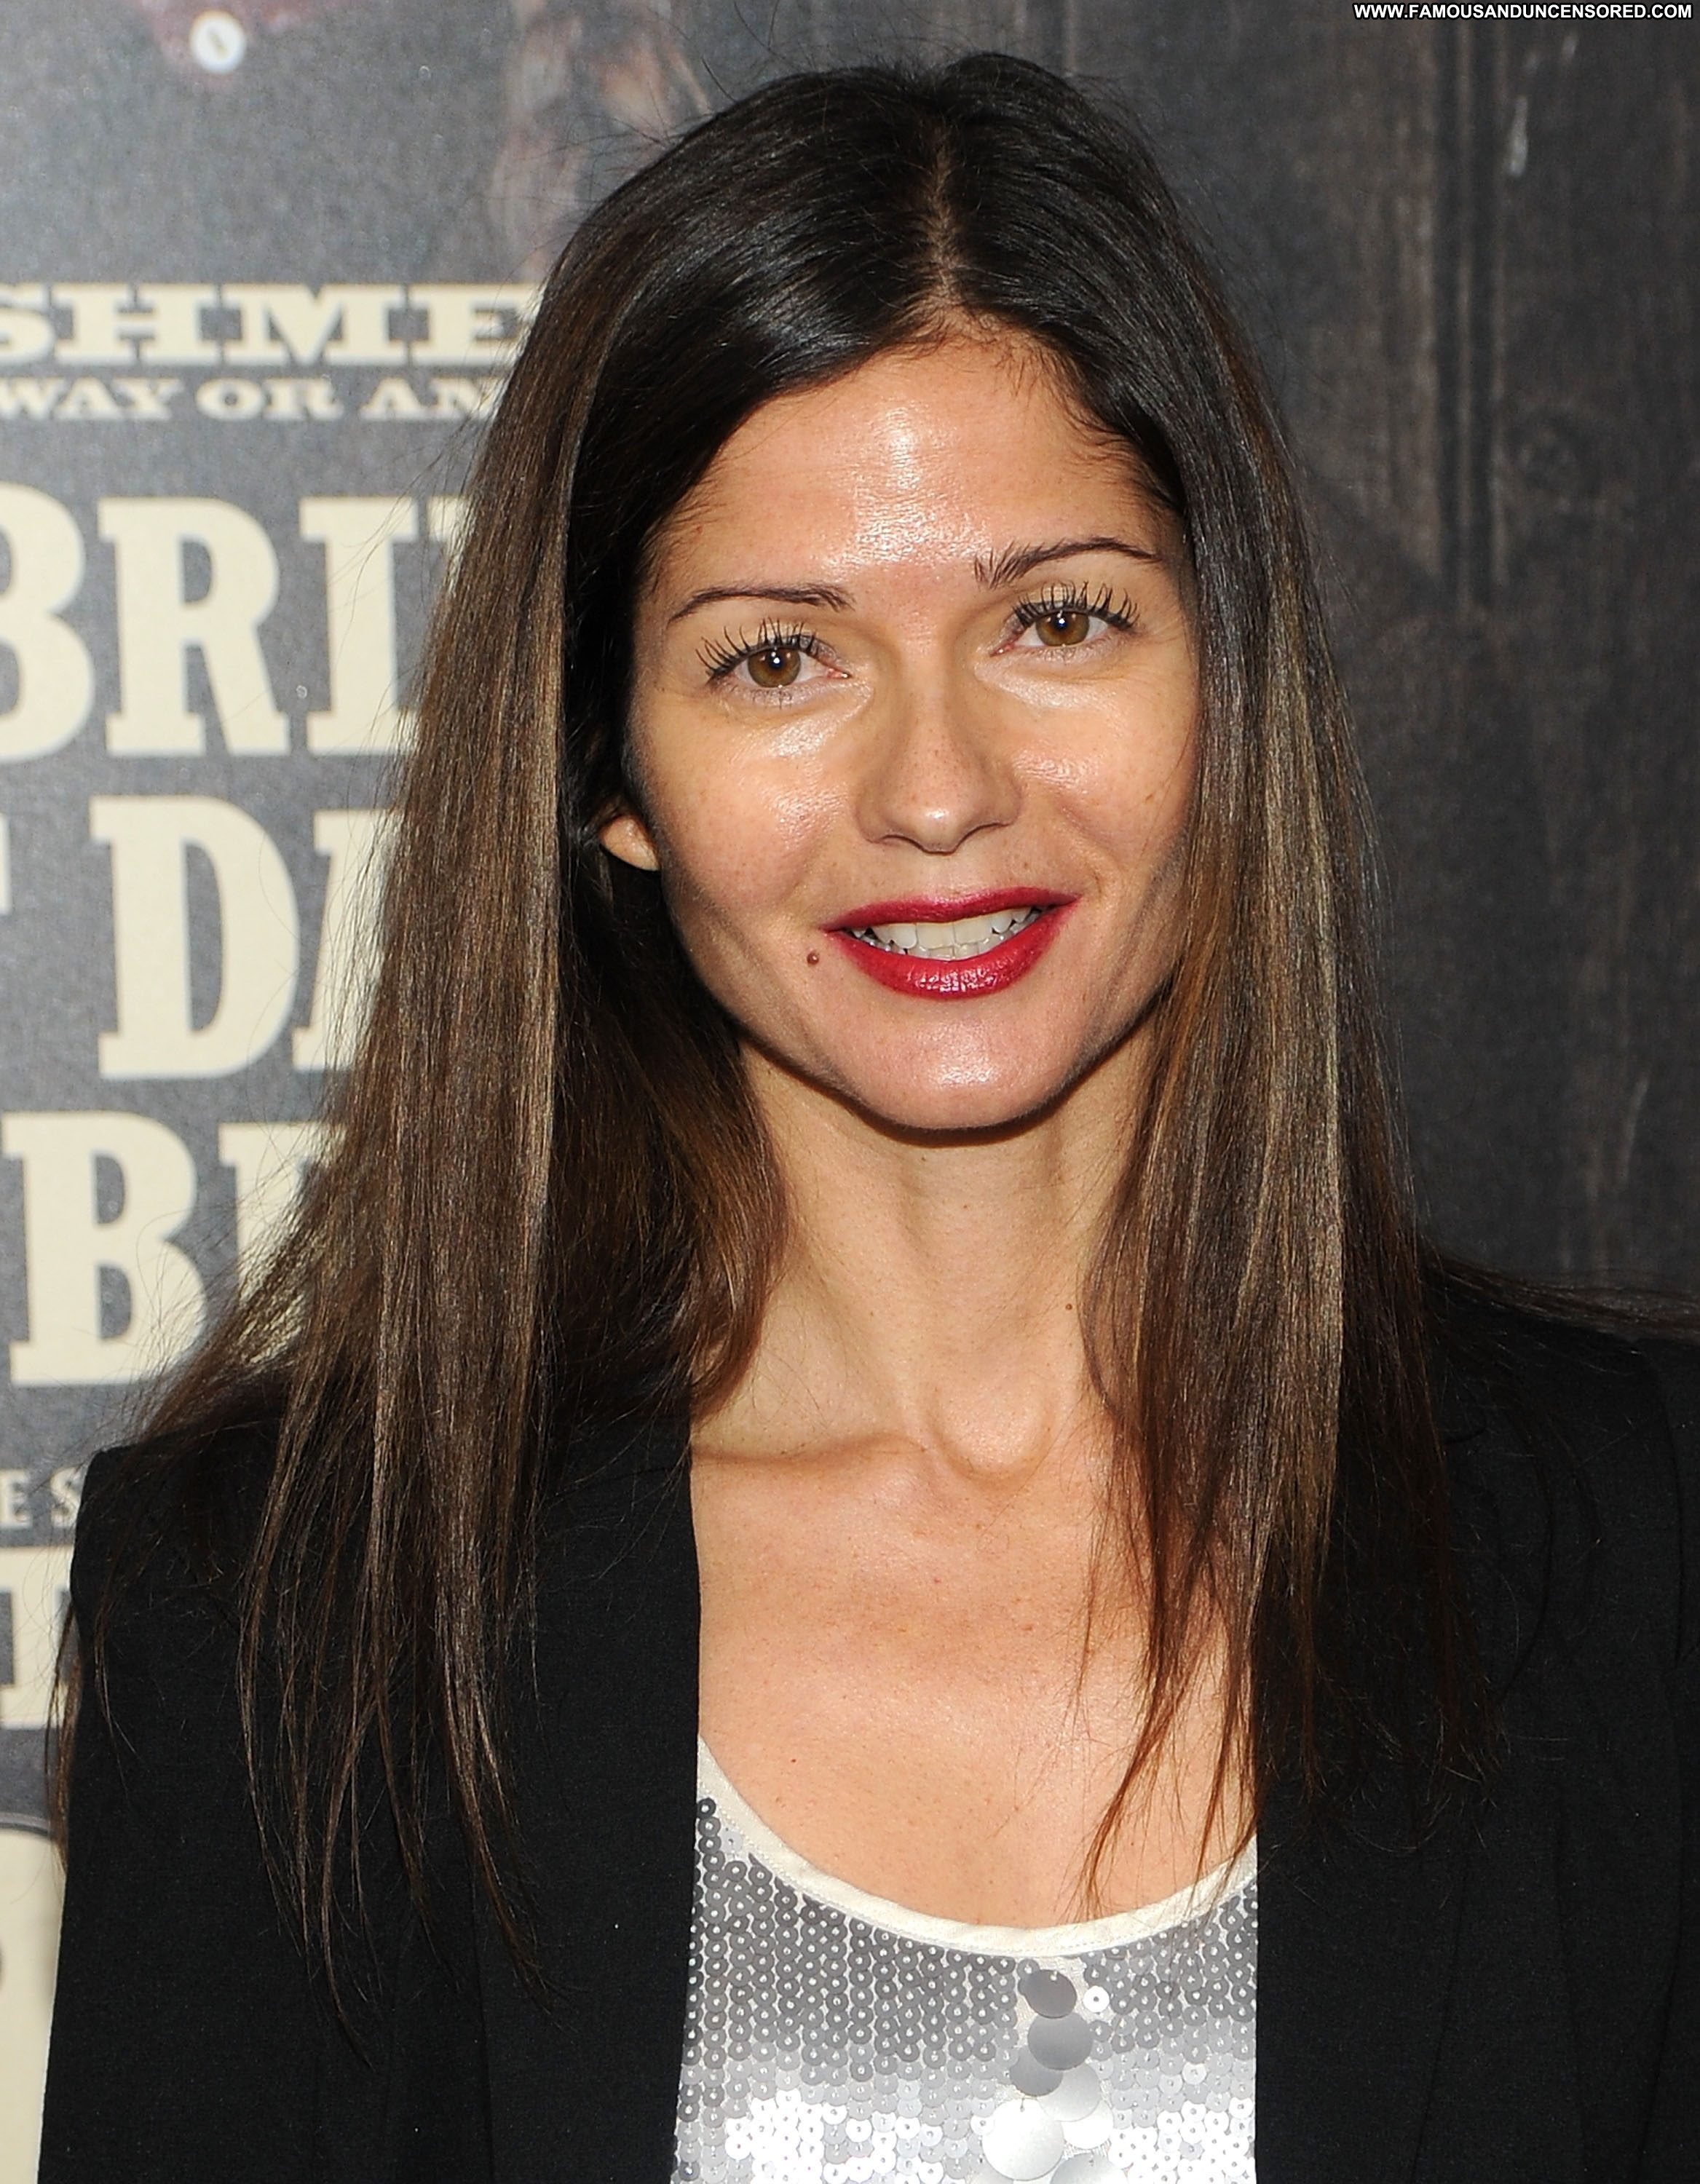 Jill Hennessy No Source Celebrity Beautiful Babe Posing